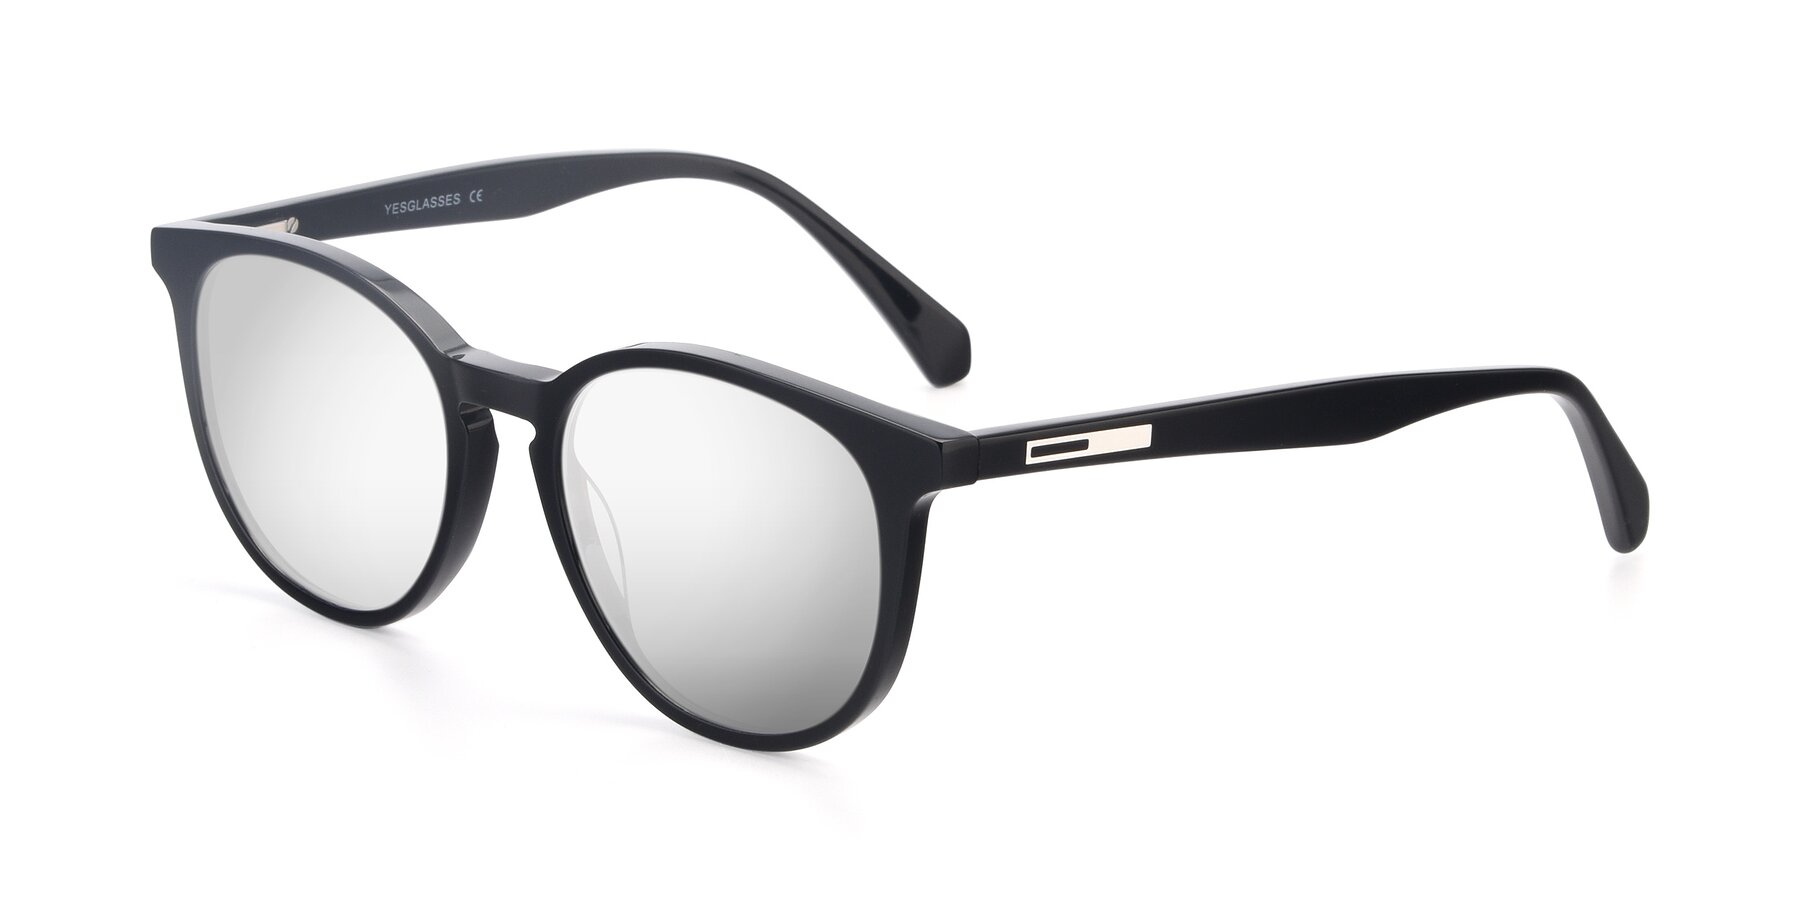 Angle of 17721 in Black with Silver Mirrored Lenses